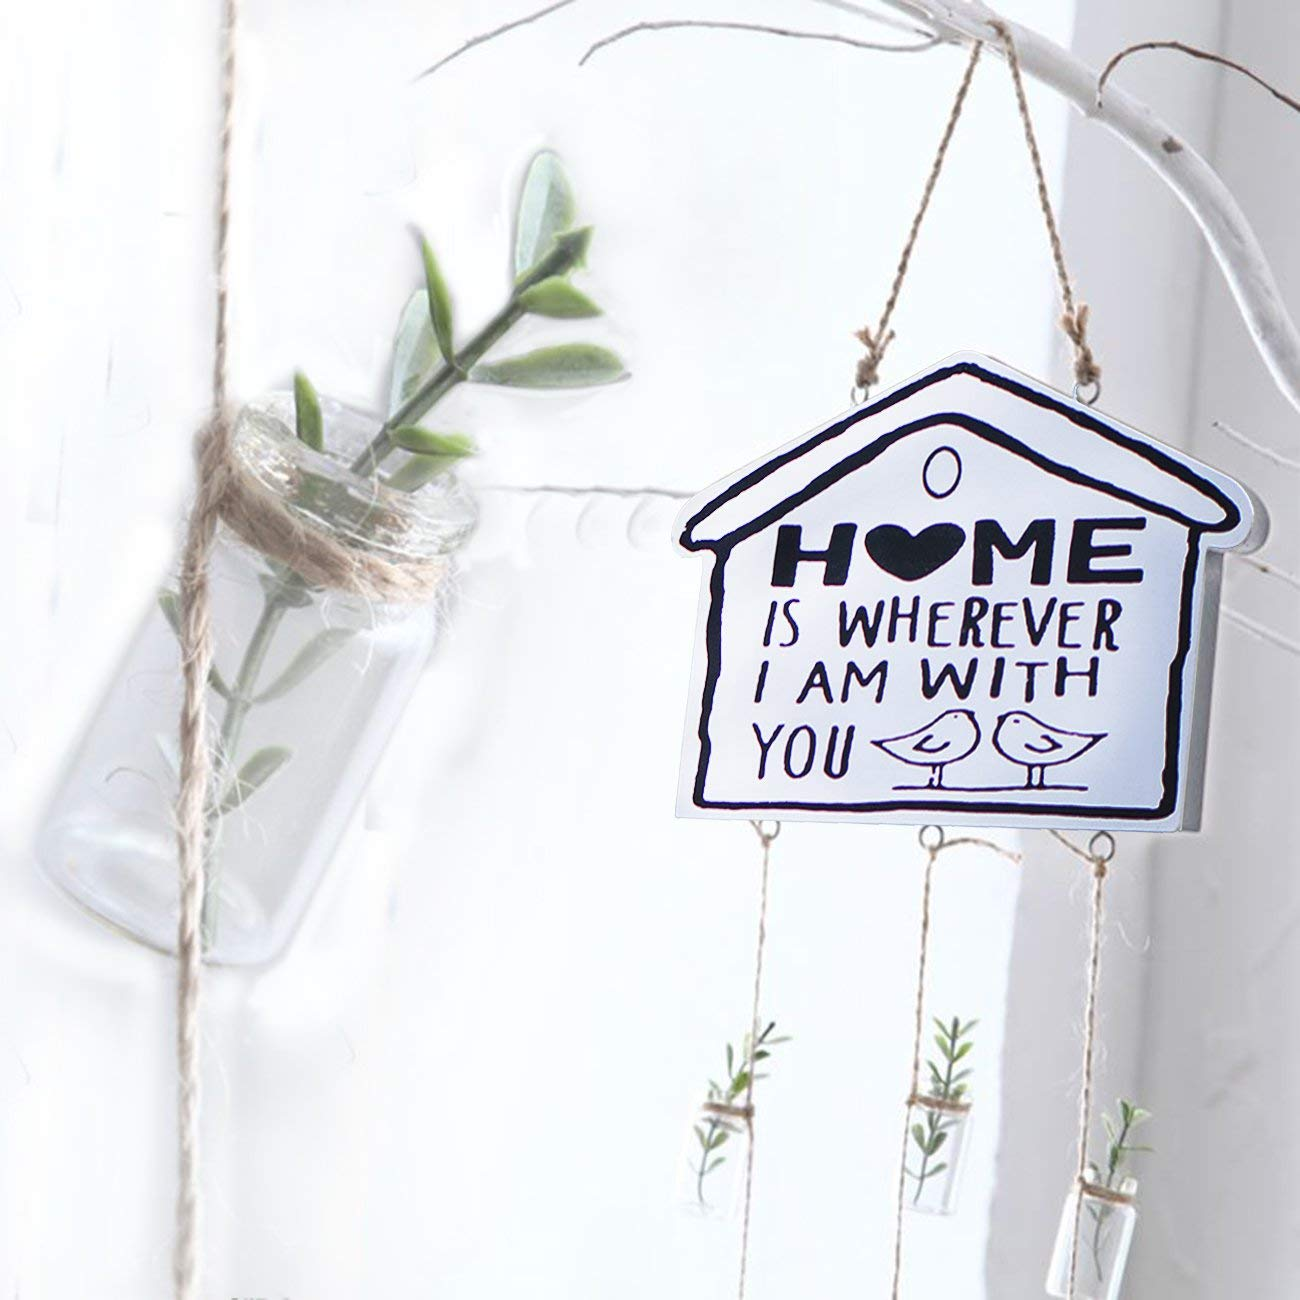 """Home Cabin Style Wall Rustic Sign Hanger """"Home is wherever I am with you"""" Sign Wood Decorative Macrame Plant Hanger Art Plague Front Door Welcome Sign Vintage Retro Handmade Home Cafe Bar"""